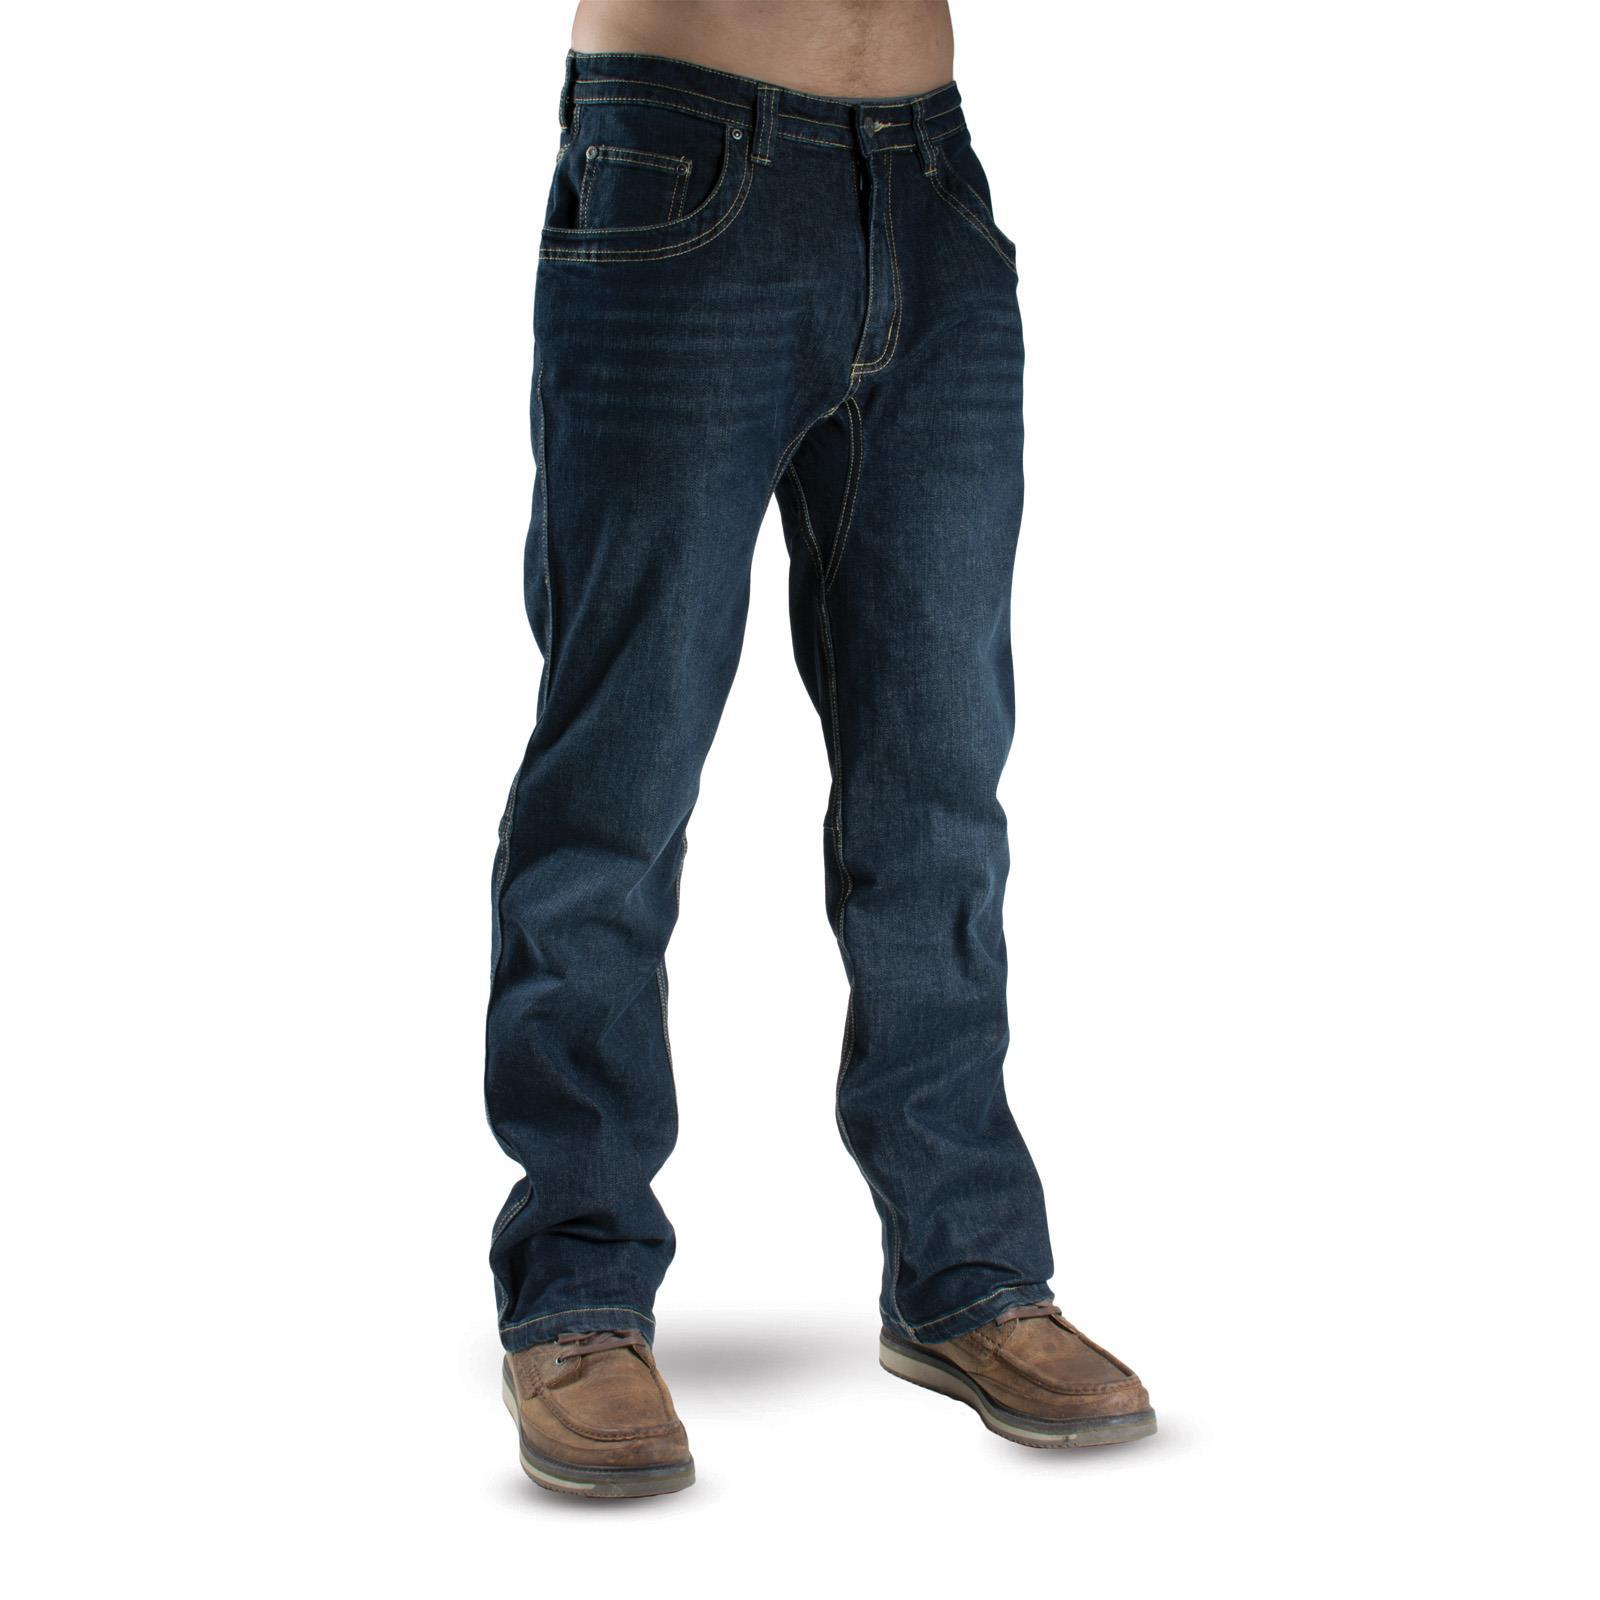 wash manual s the jeans most skinny advice stone men how wear comfortable slim to mens man comforter fit idle